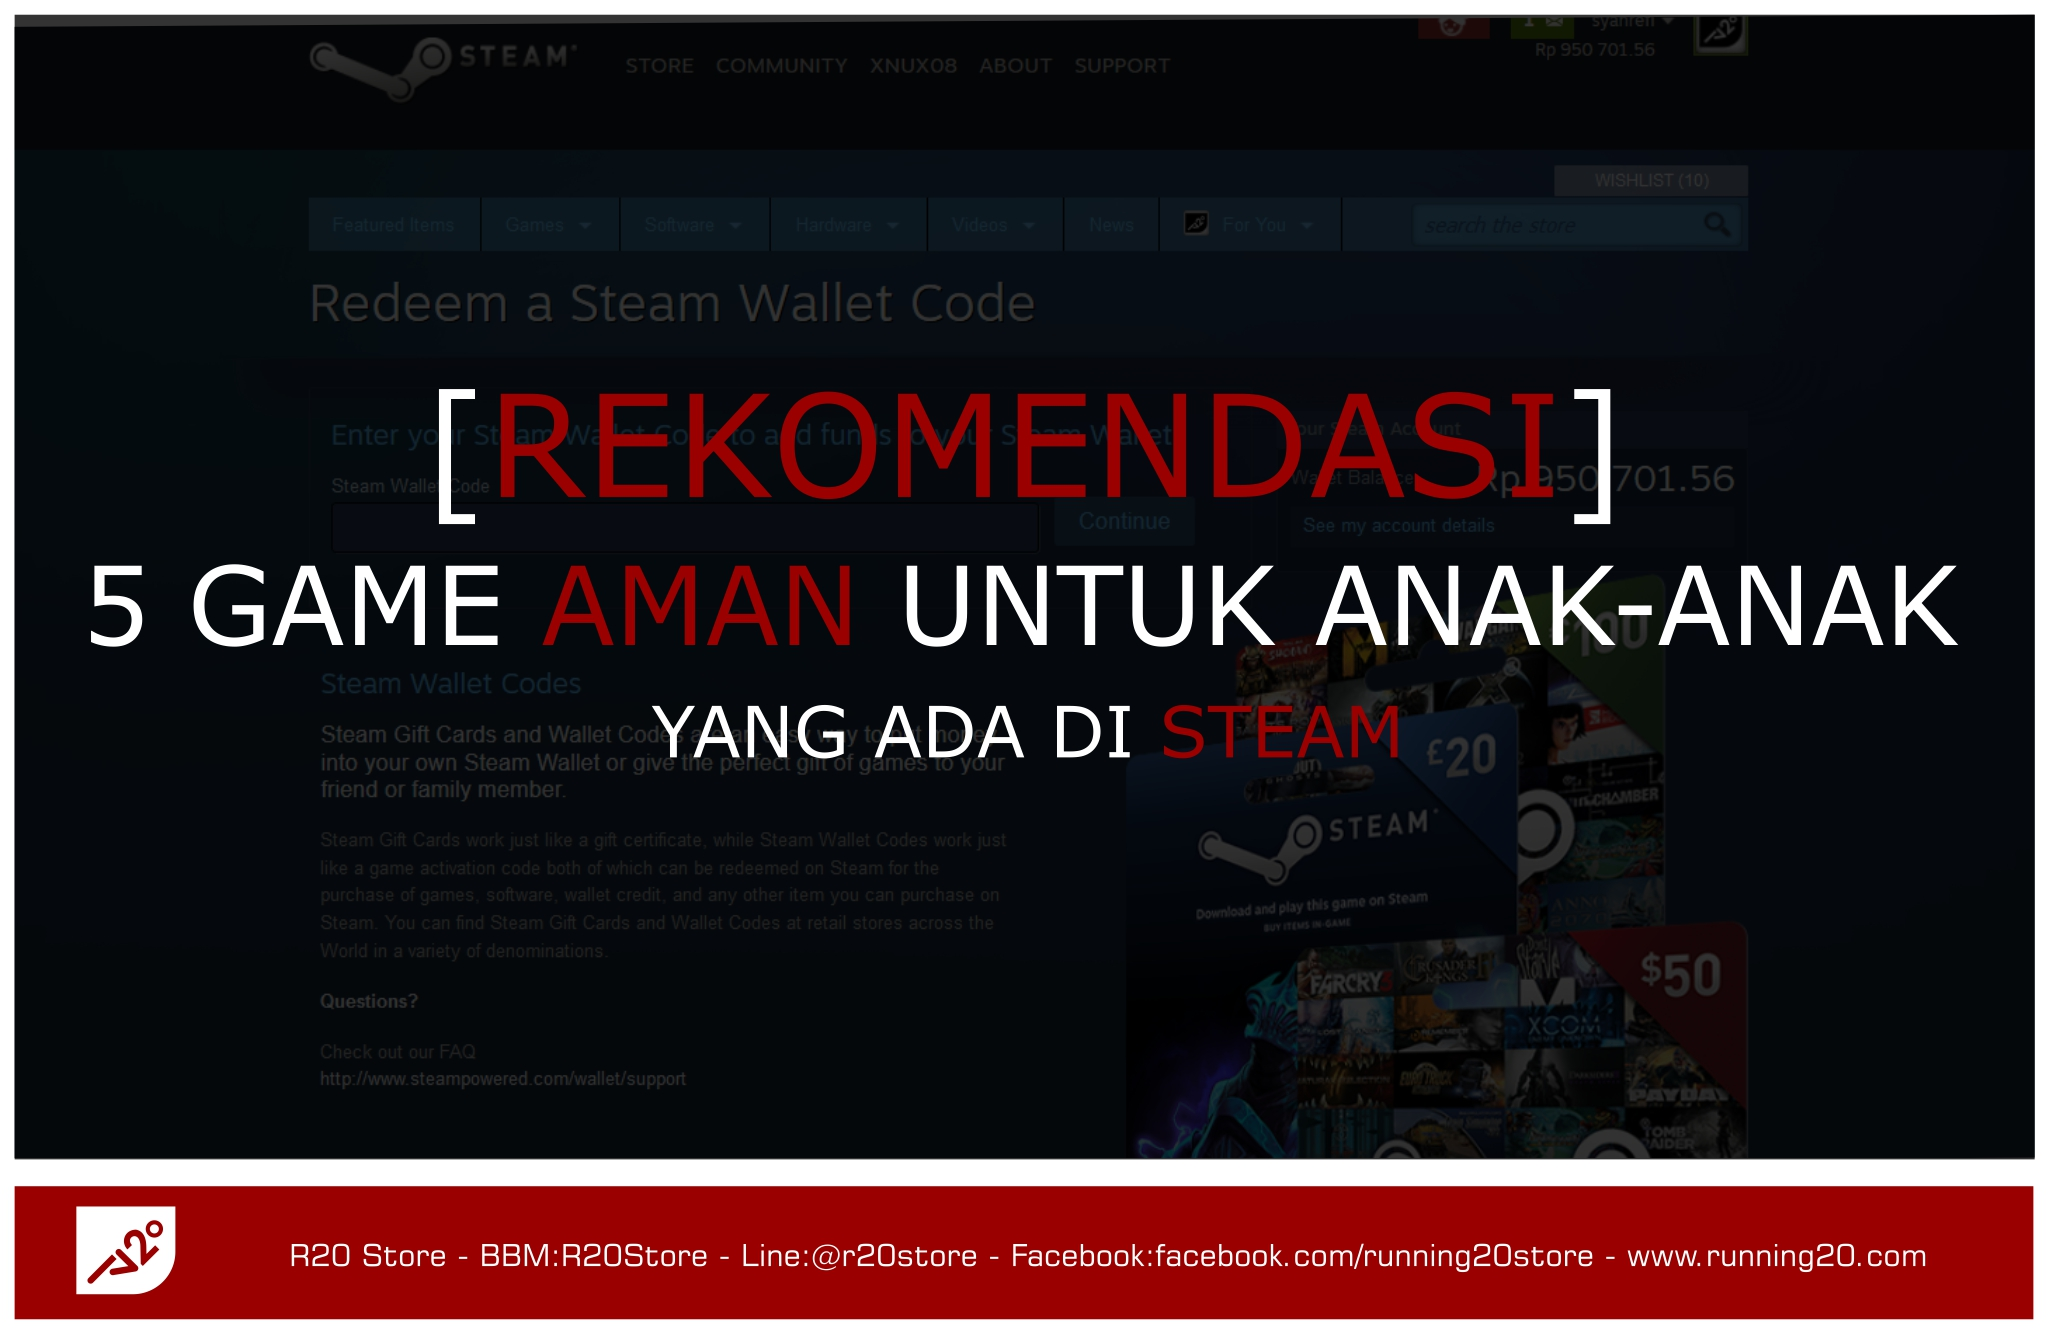 5 Game Anak-anak di Steam, Rekomendasi Running20